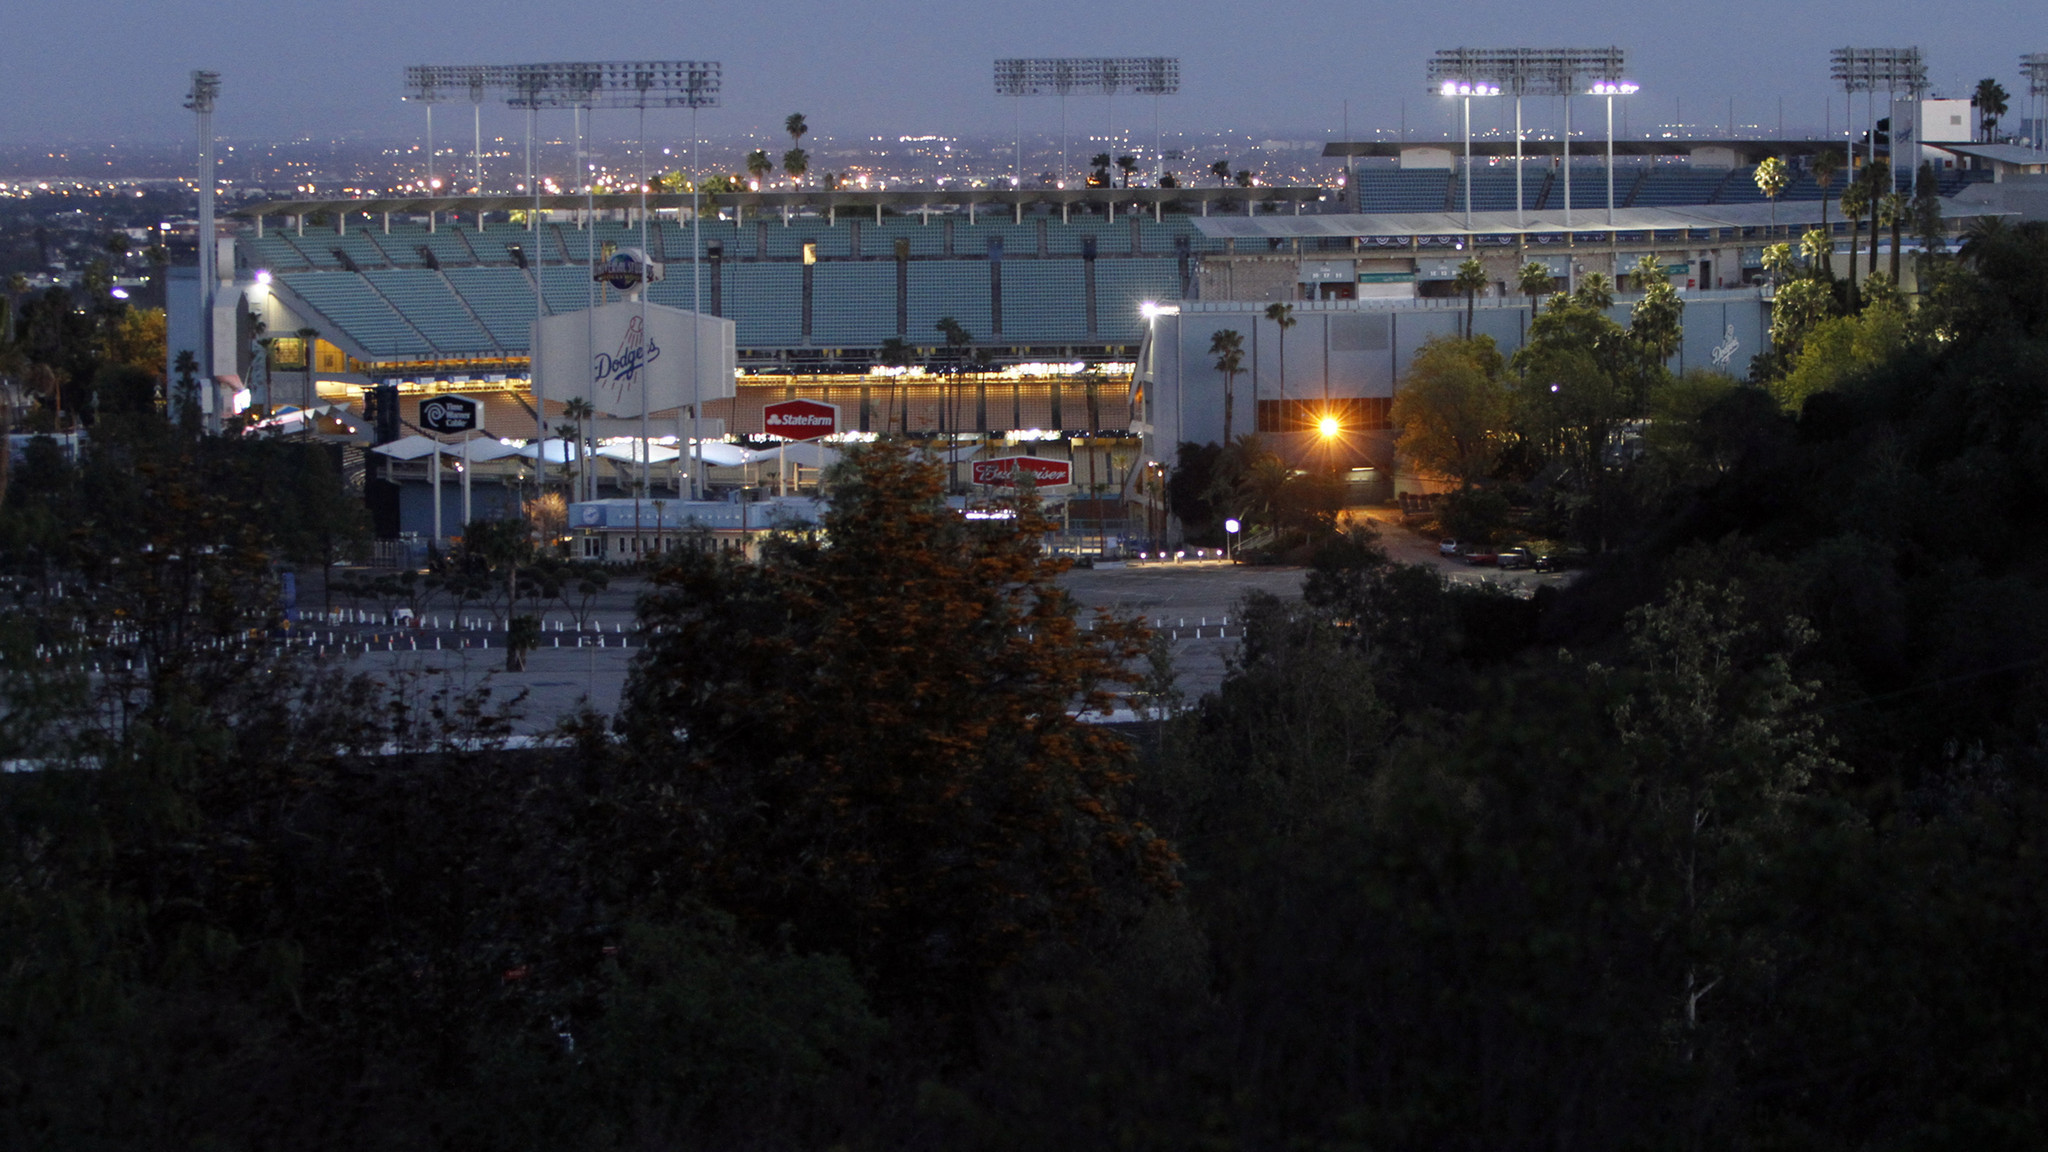 Dodgers to experiment with $5 parking in lots outside stadium - LA Times